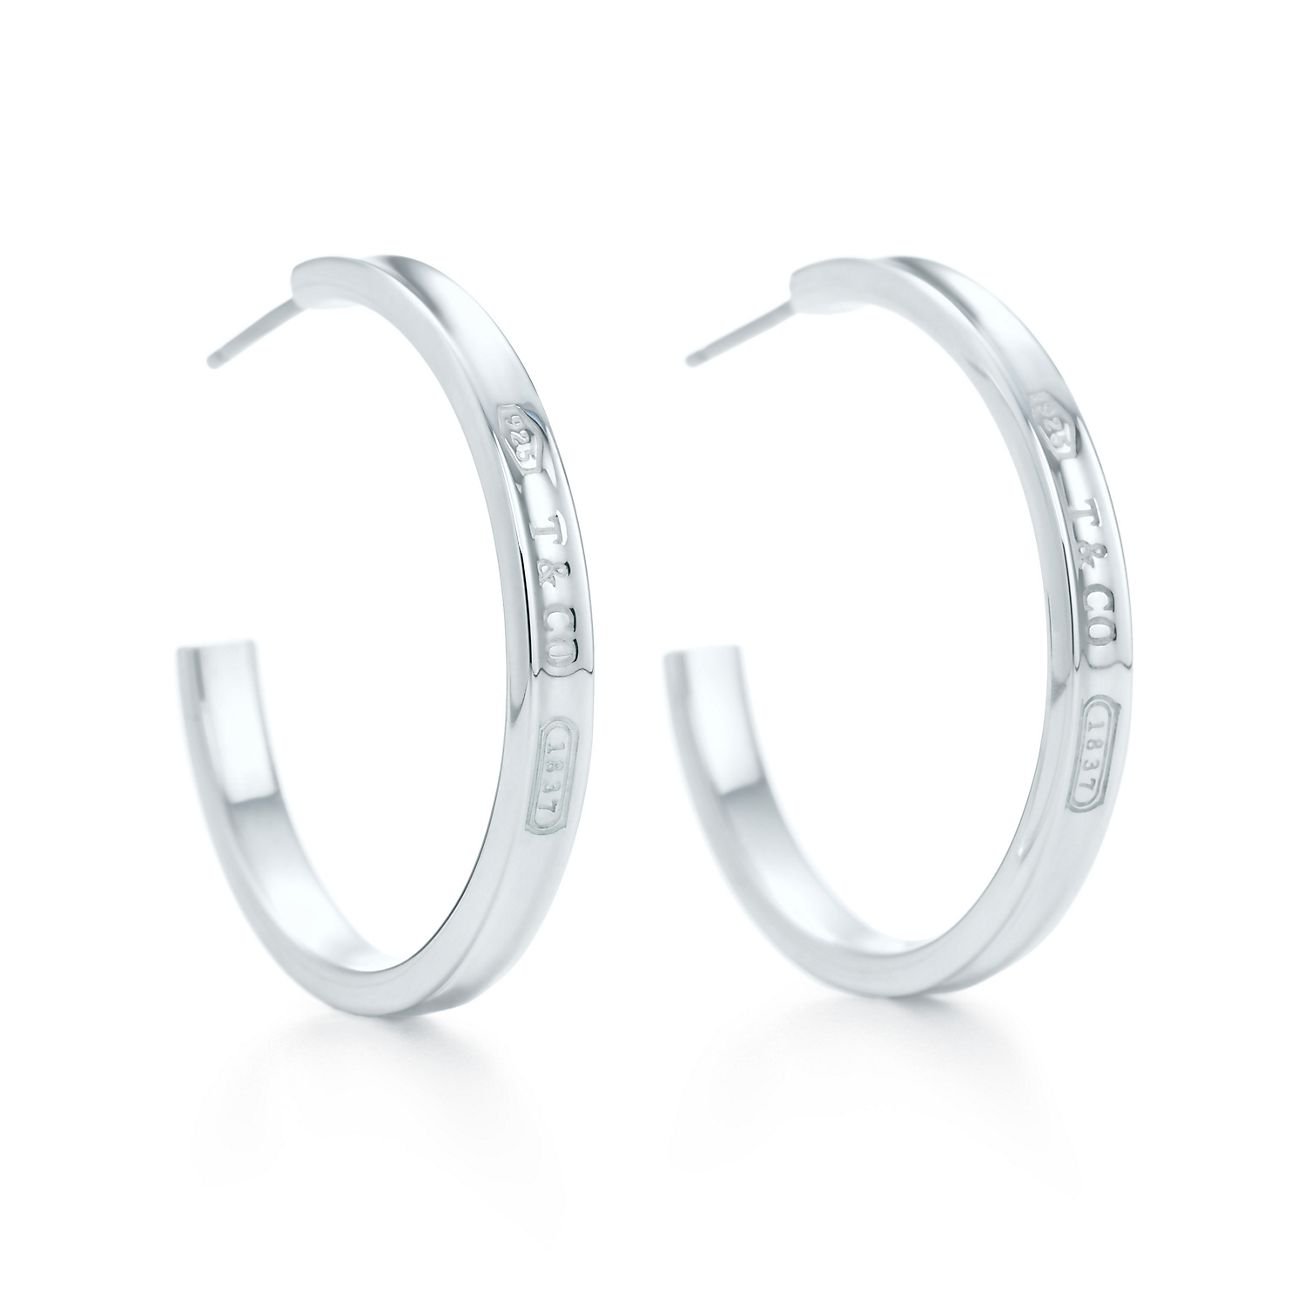 jewellers silver context large hoop p beaverbrooks jewellery the earrings